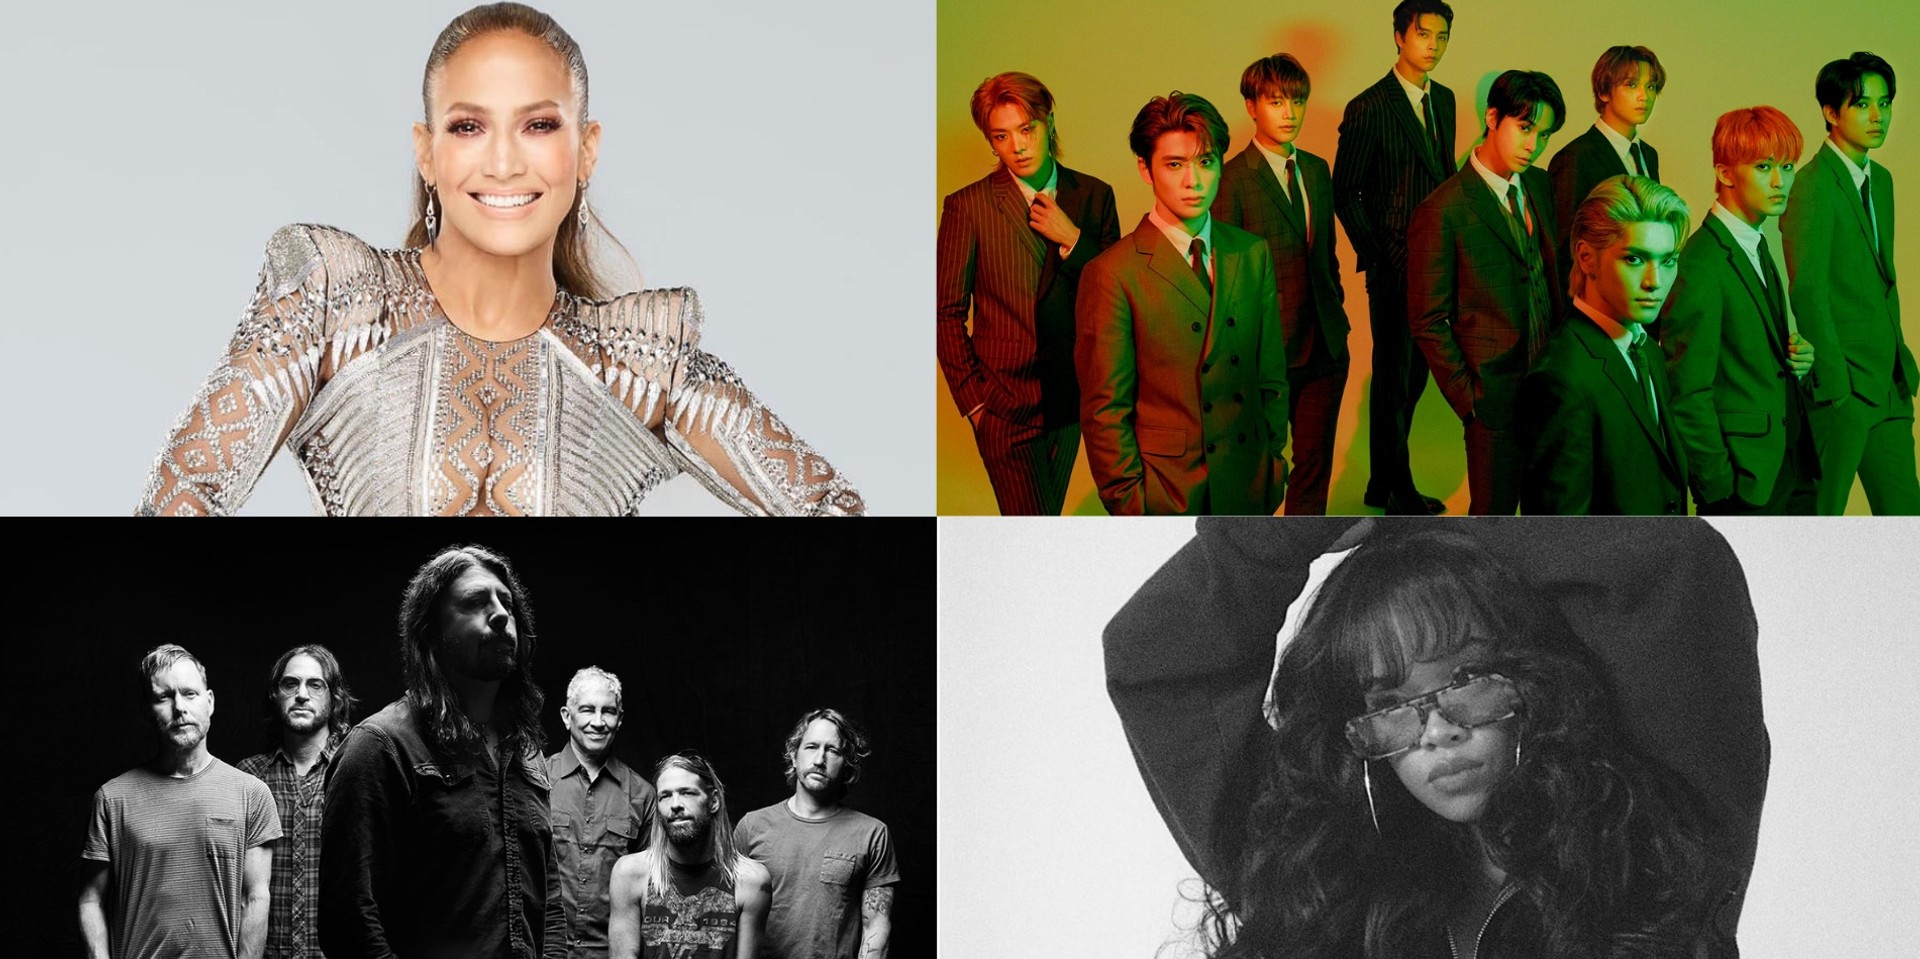 Jennifer Lopez, NCT 127, Foo Fighters, H.E.R., and more to feature in lineup for Global Citizen's 'VAX LIVE' concert